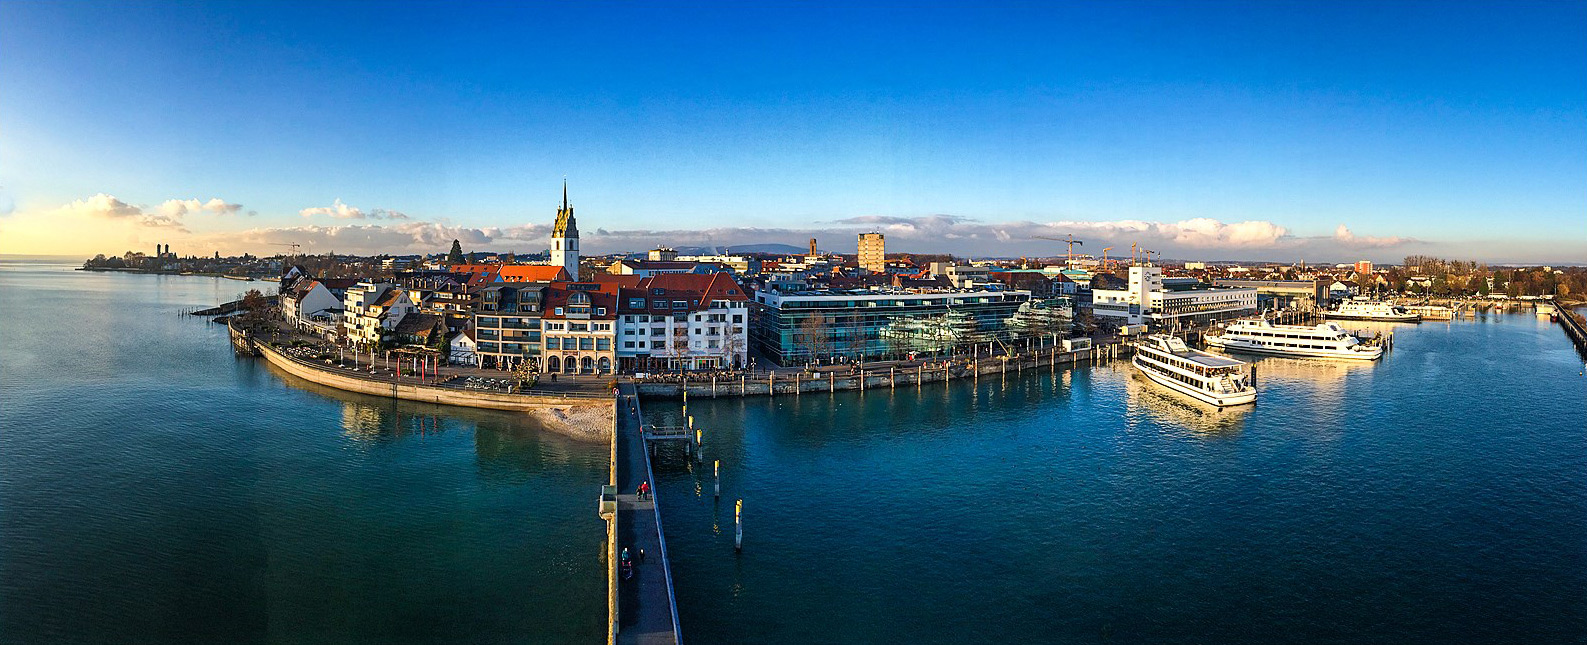 World Famous Places Most Beautiful Places In Germany To Visit